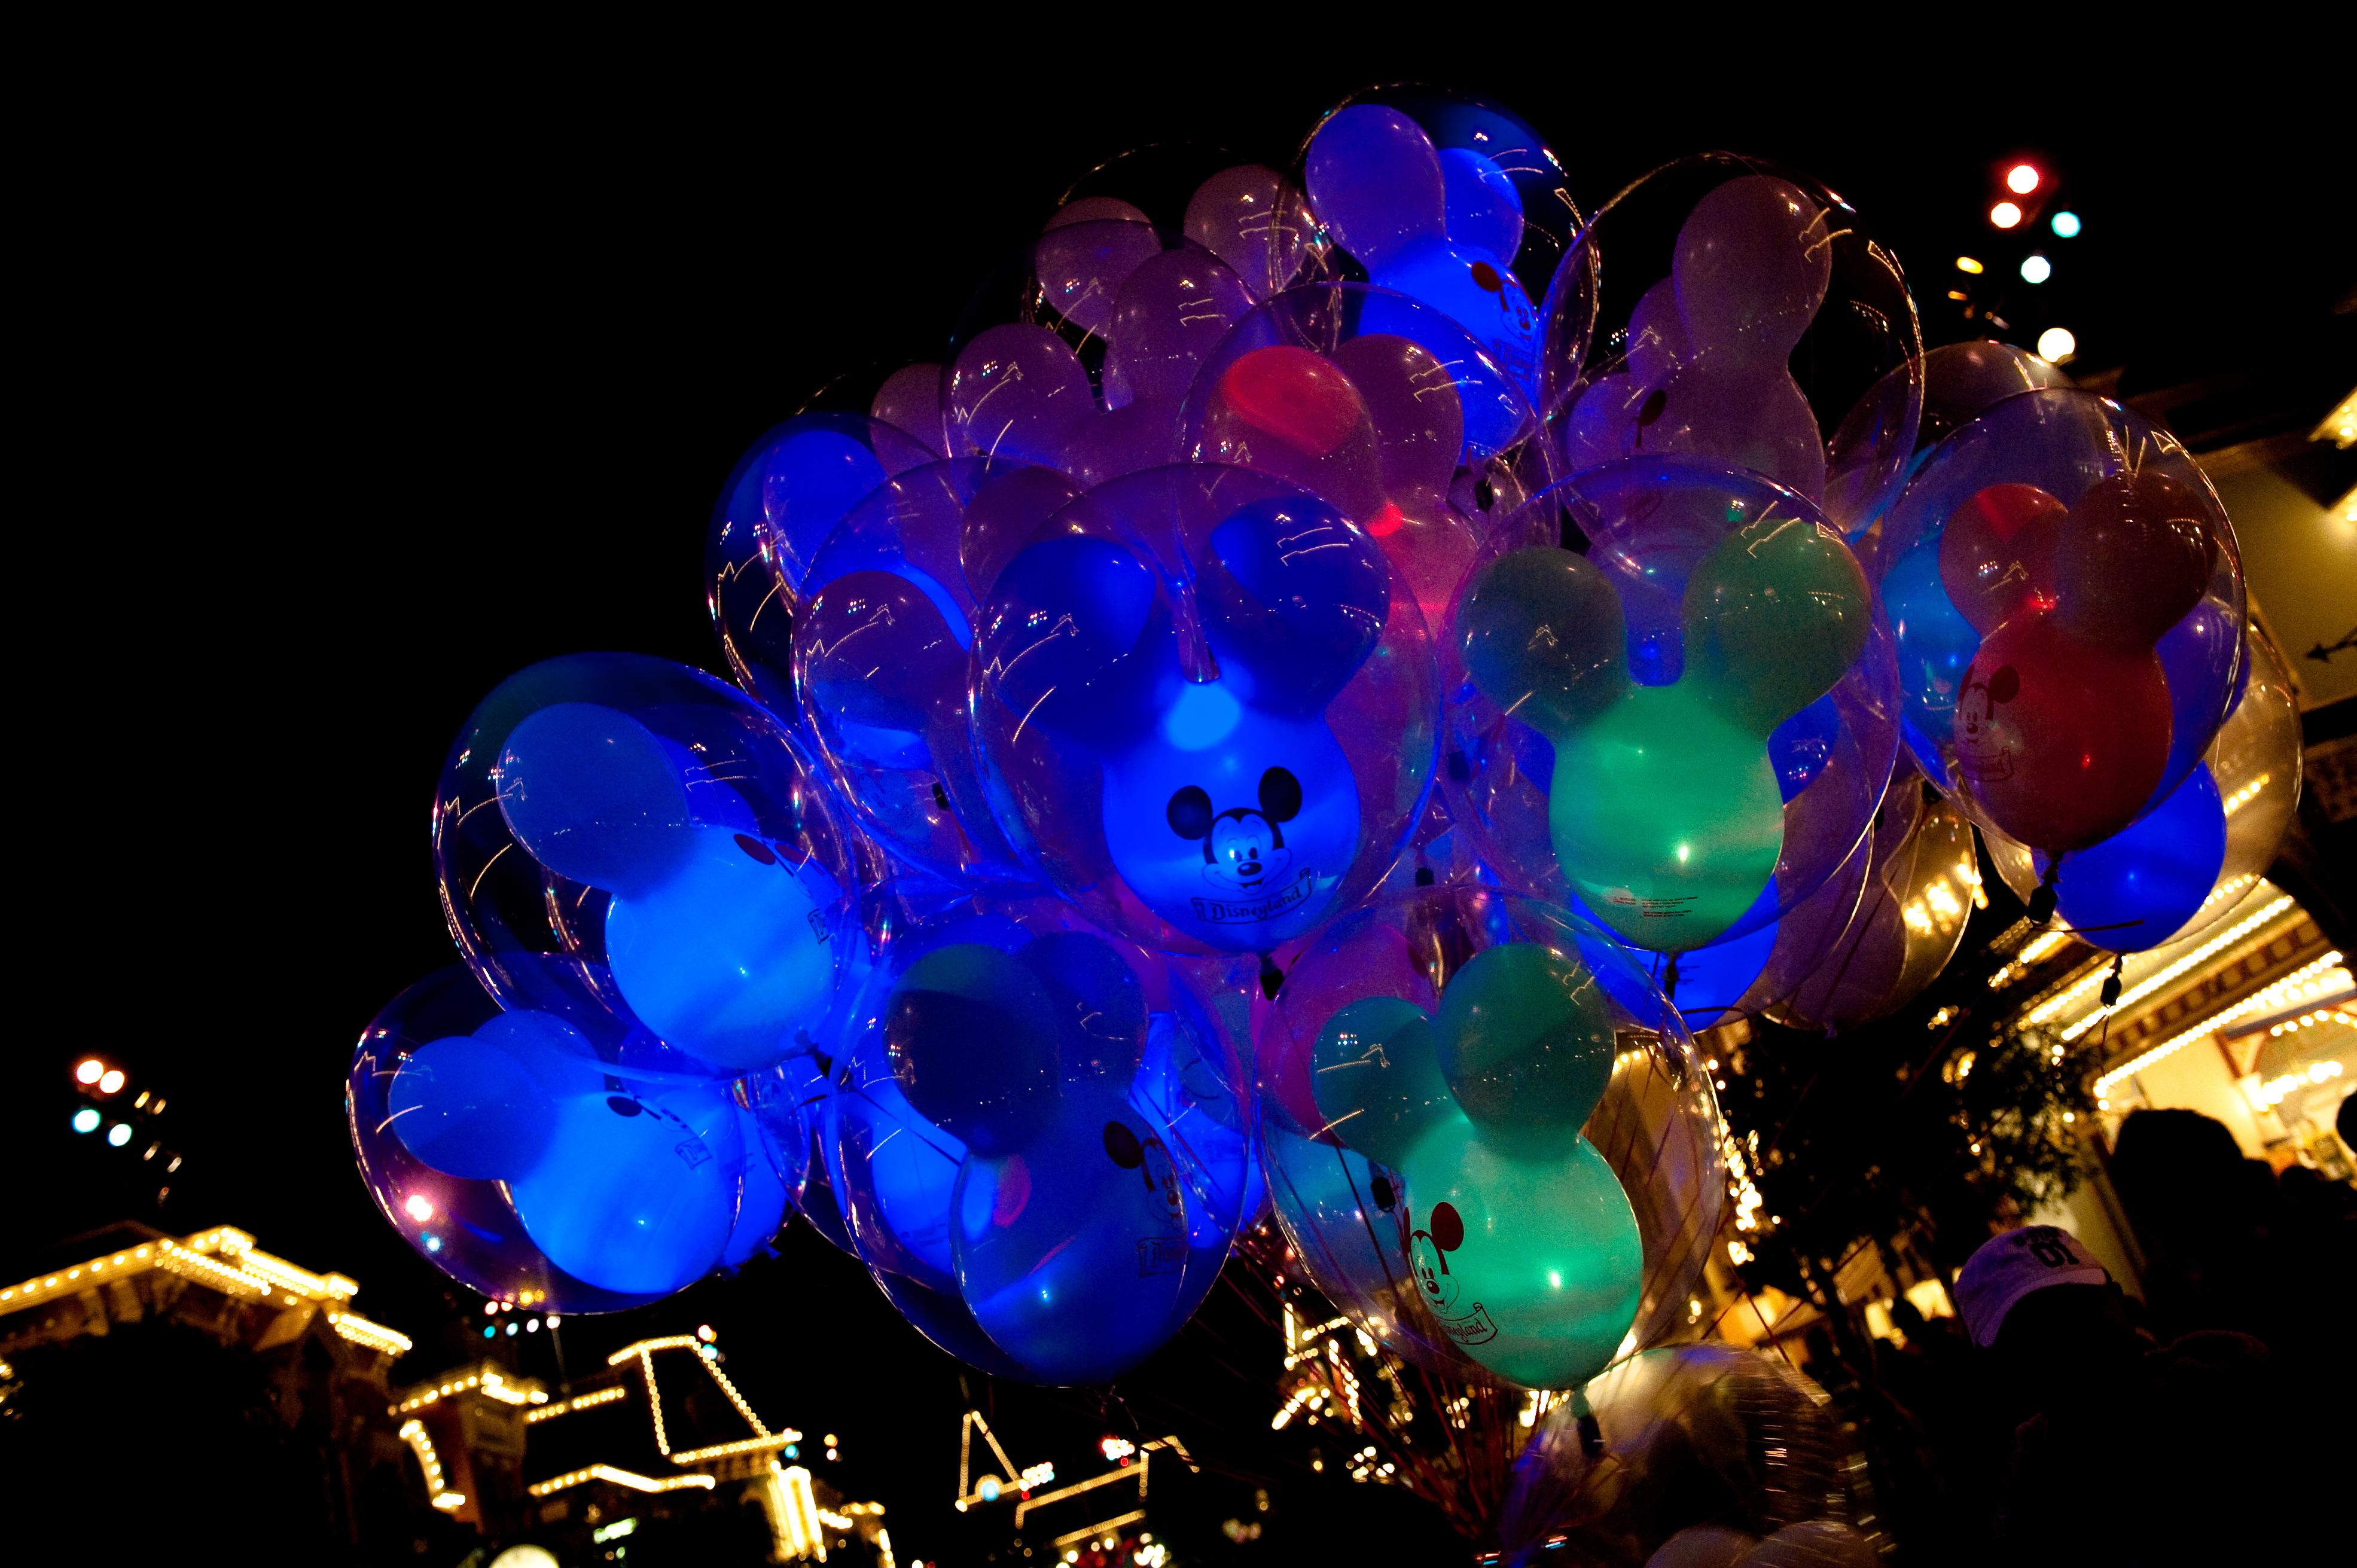 Night Balloons - Disneyland